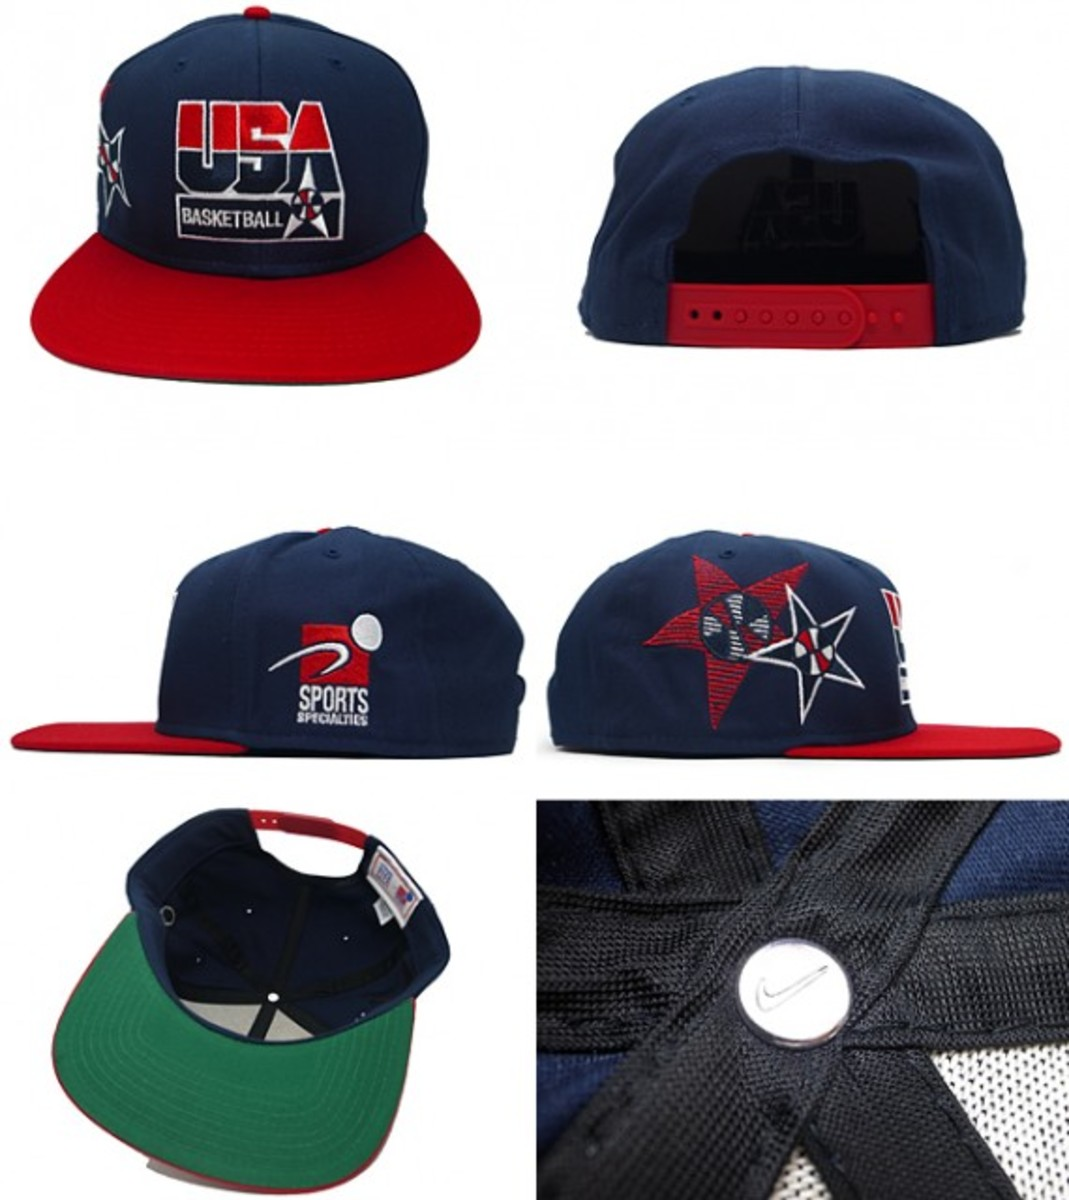 nike-true--usa-basketball-olympics-snapback-caps-04